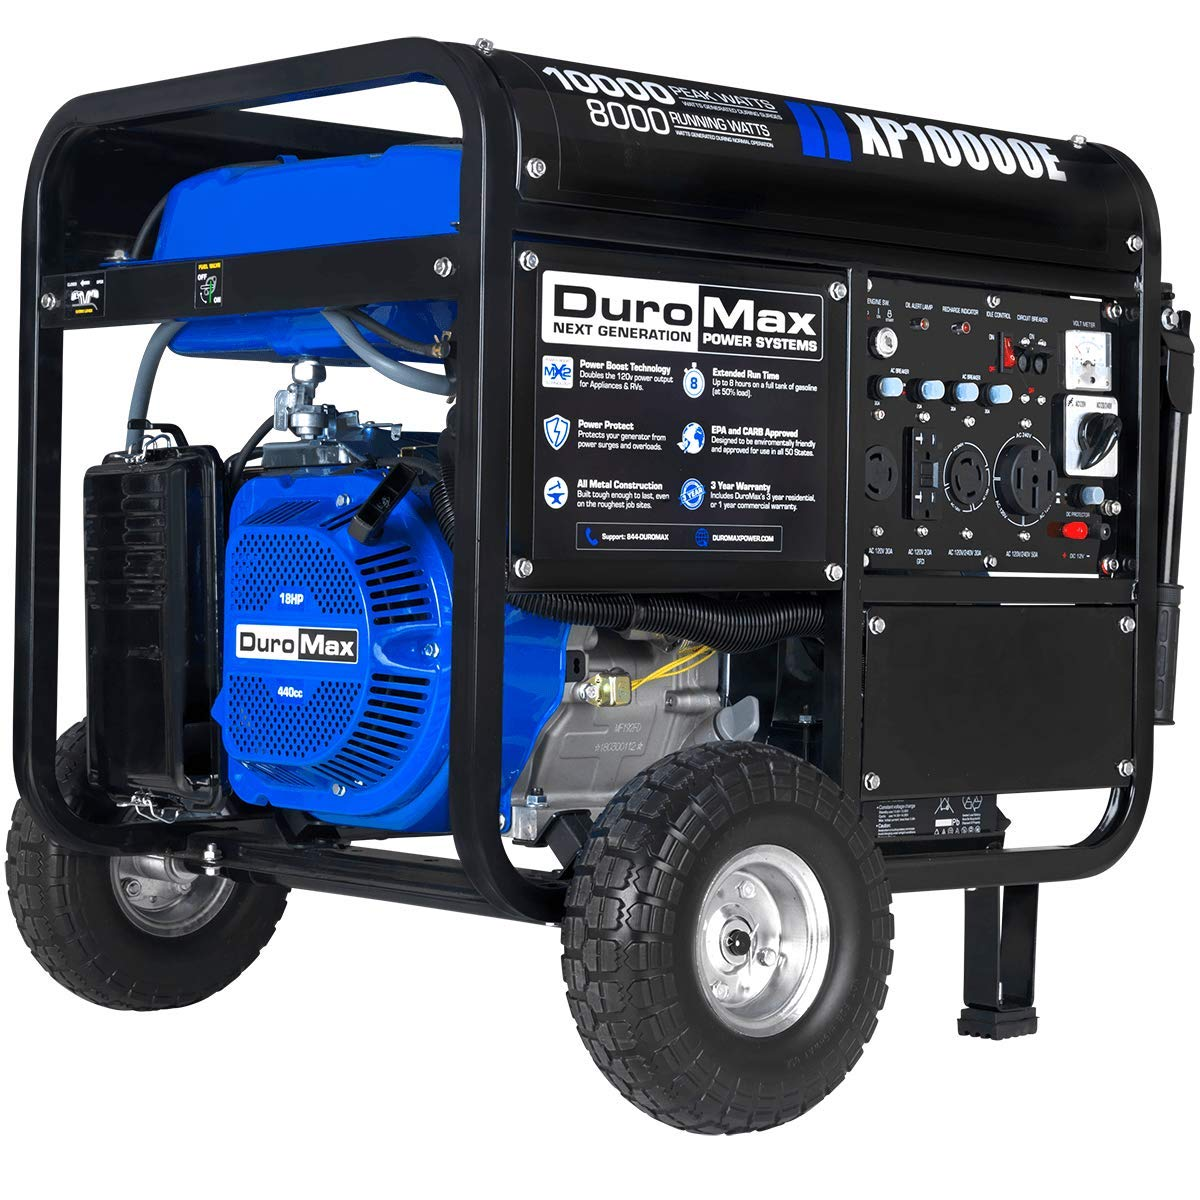 Top 10 Best Portable Generator (2020 Reviews & Buying Guide) 3